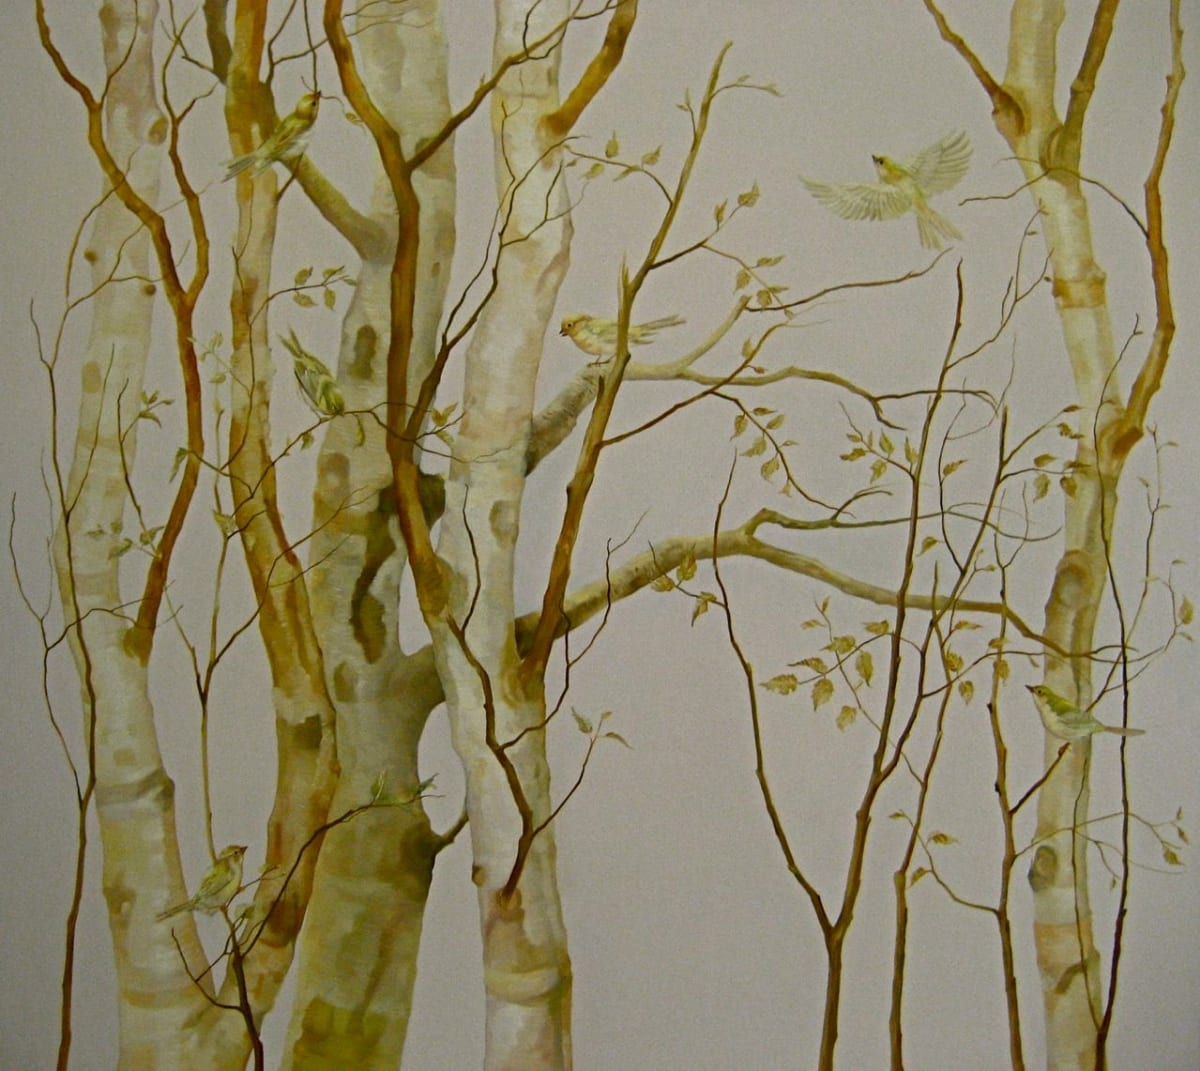 Grace O'Connor Yellow Birch, 2009 Oil on Linen 92 x 102cm 36.2 x 40.2